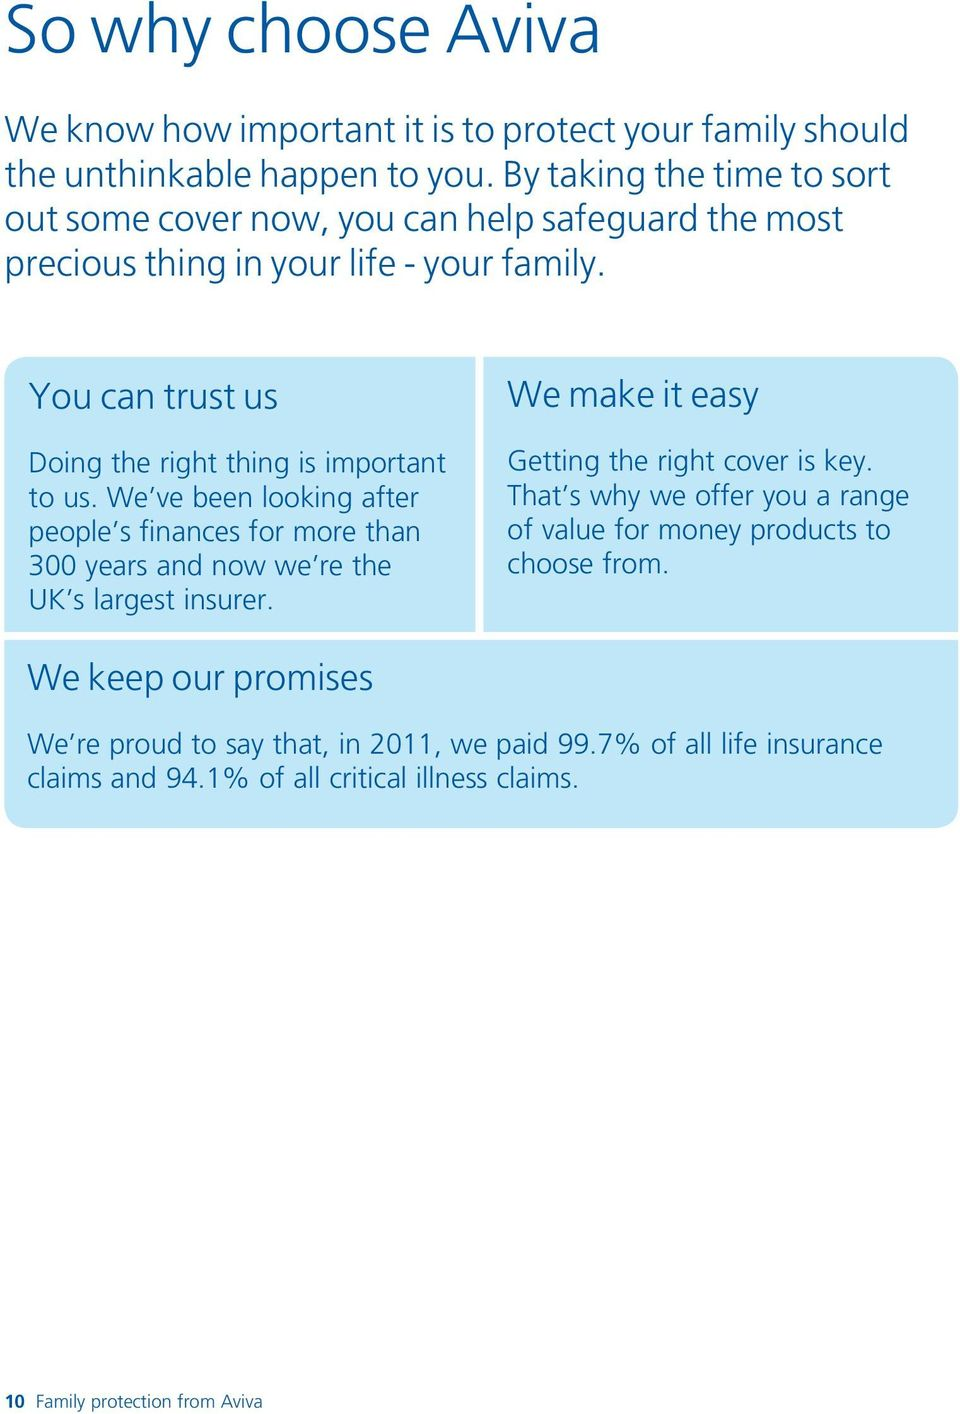 You can trust us Doing the right thing is important to us. We ve been looking after people s finances for more than 300 years and now we re the UK s largest insurer.